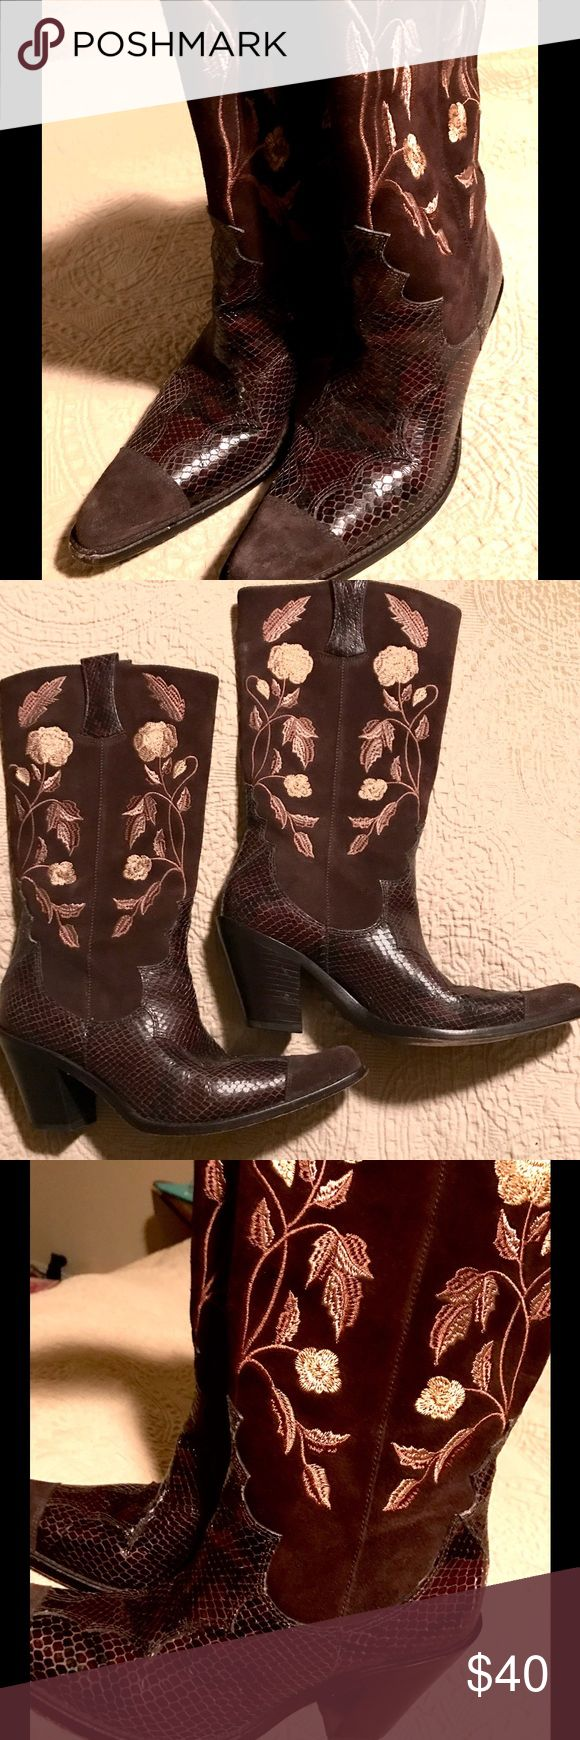 Women's Antonio Melani Fashion Boots Women's Antonio Melani Fashion Boots - used, in good condition. ANTONIO MELANI Shoes